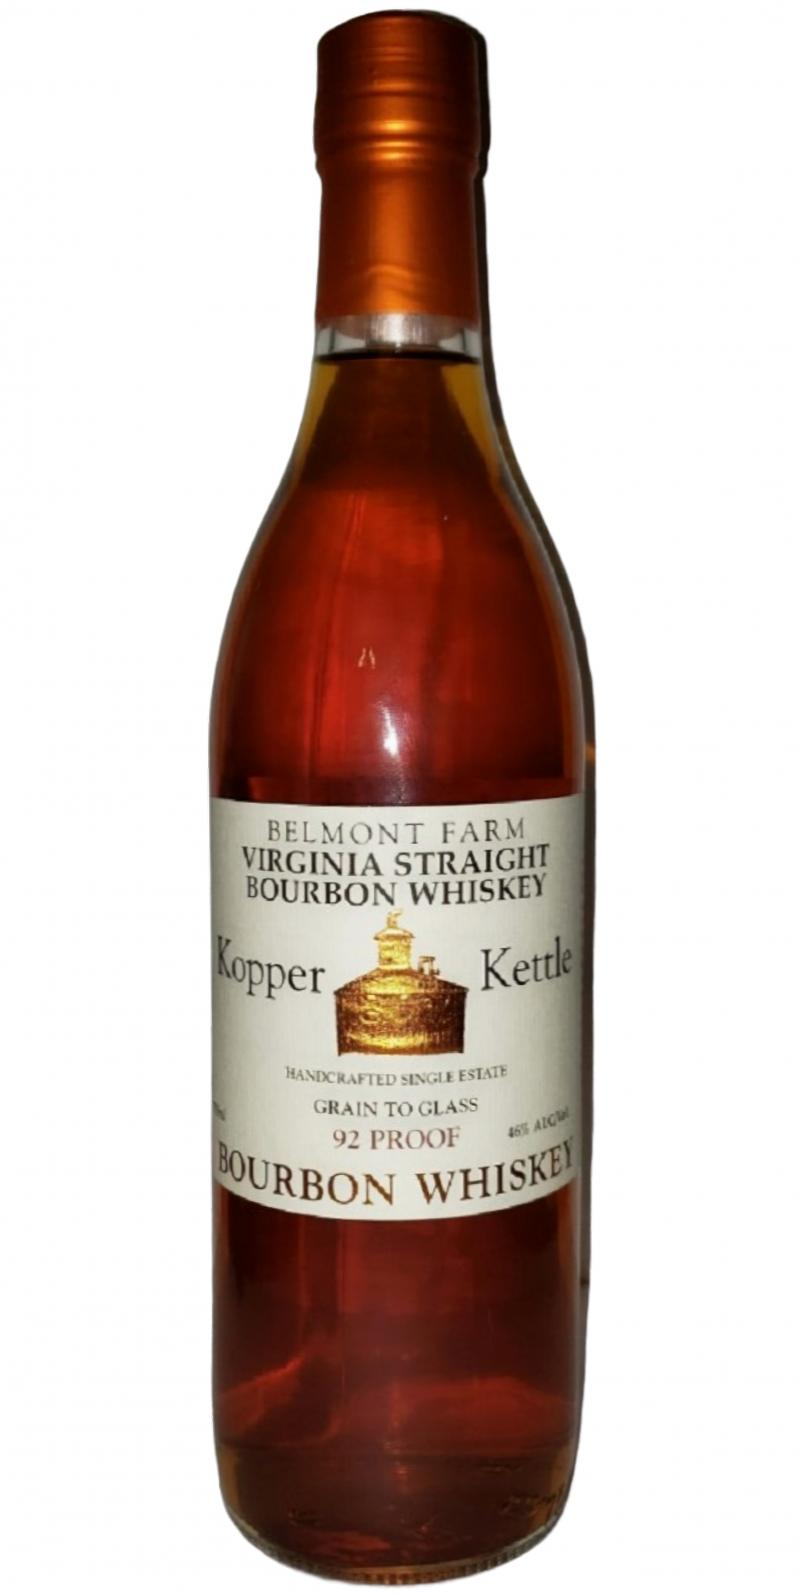 Kopper Kettle Virgina Straight Bourbon Whiskey